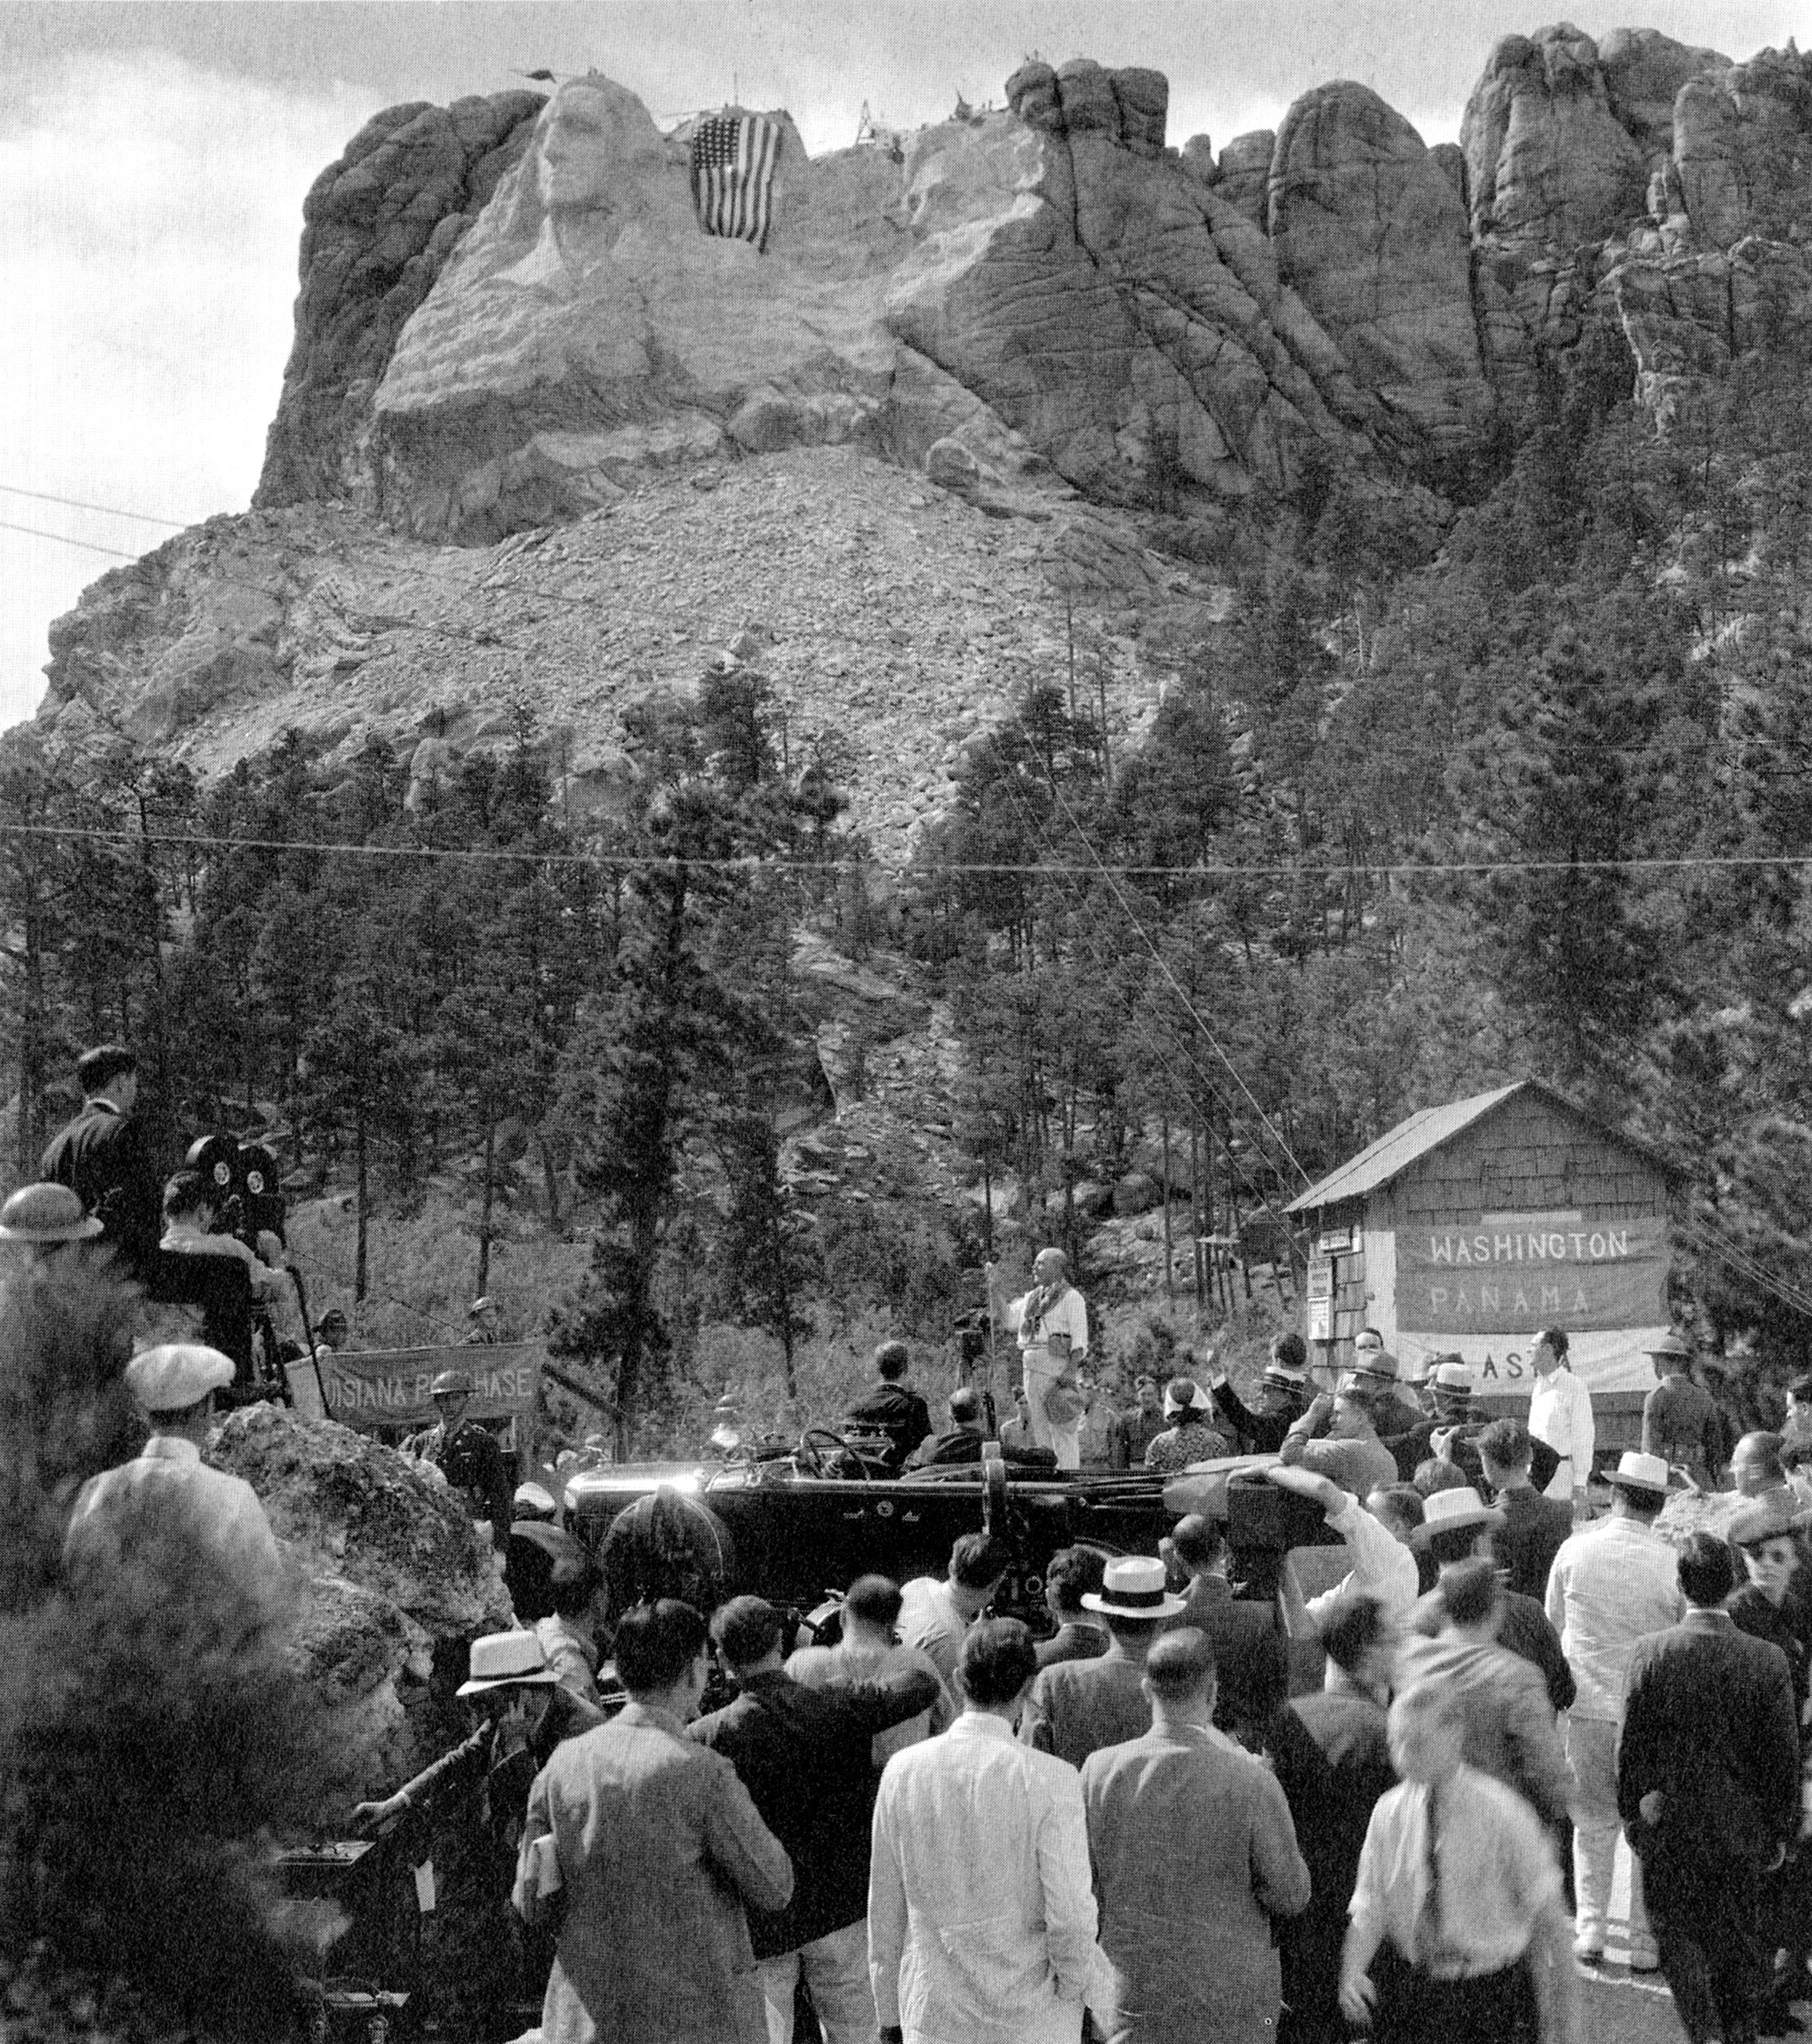 Gutzon Borglum addresses President Franklin D. Roosevelt (seated in the presidential car) and the crowd at the dedication of Thomas Jefferson on Aug. 30, 1936.